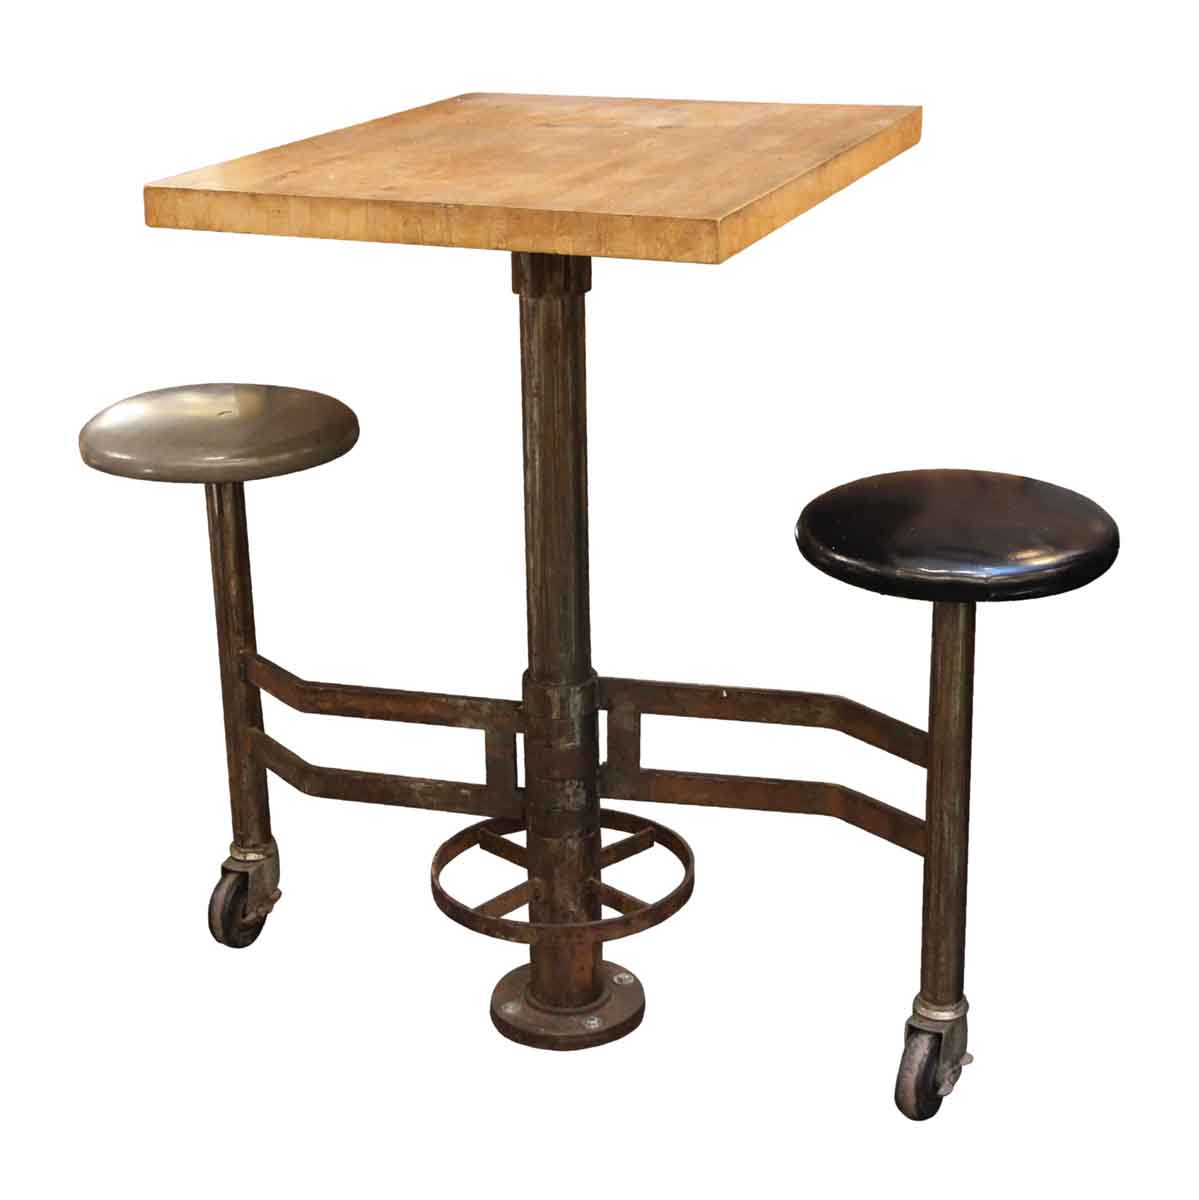 Table Height Stool: Industrial Wall Mounted Counter Height Table With Attached